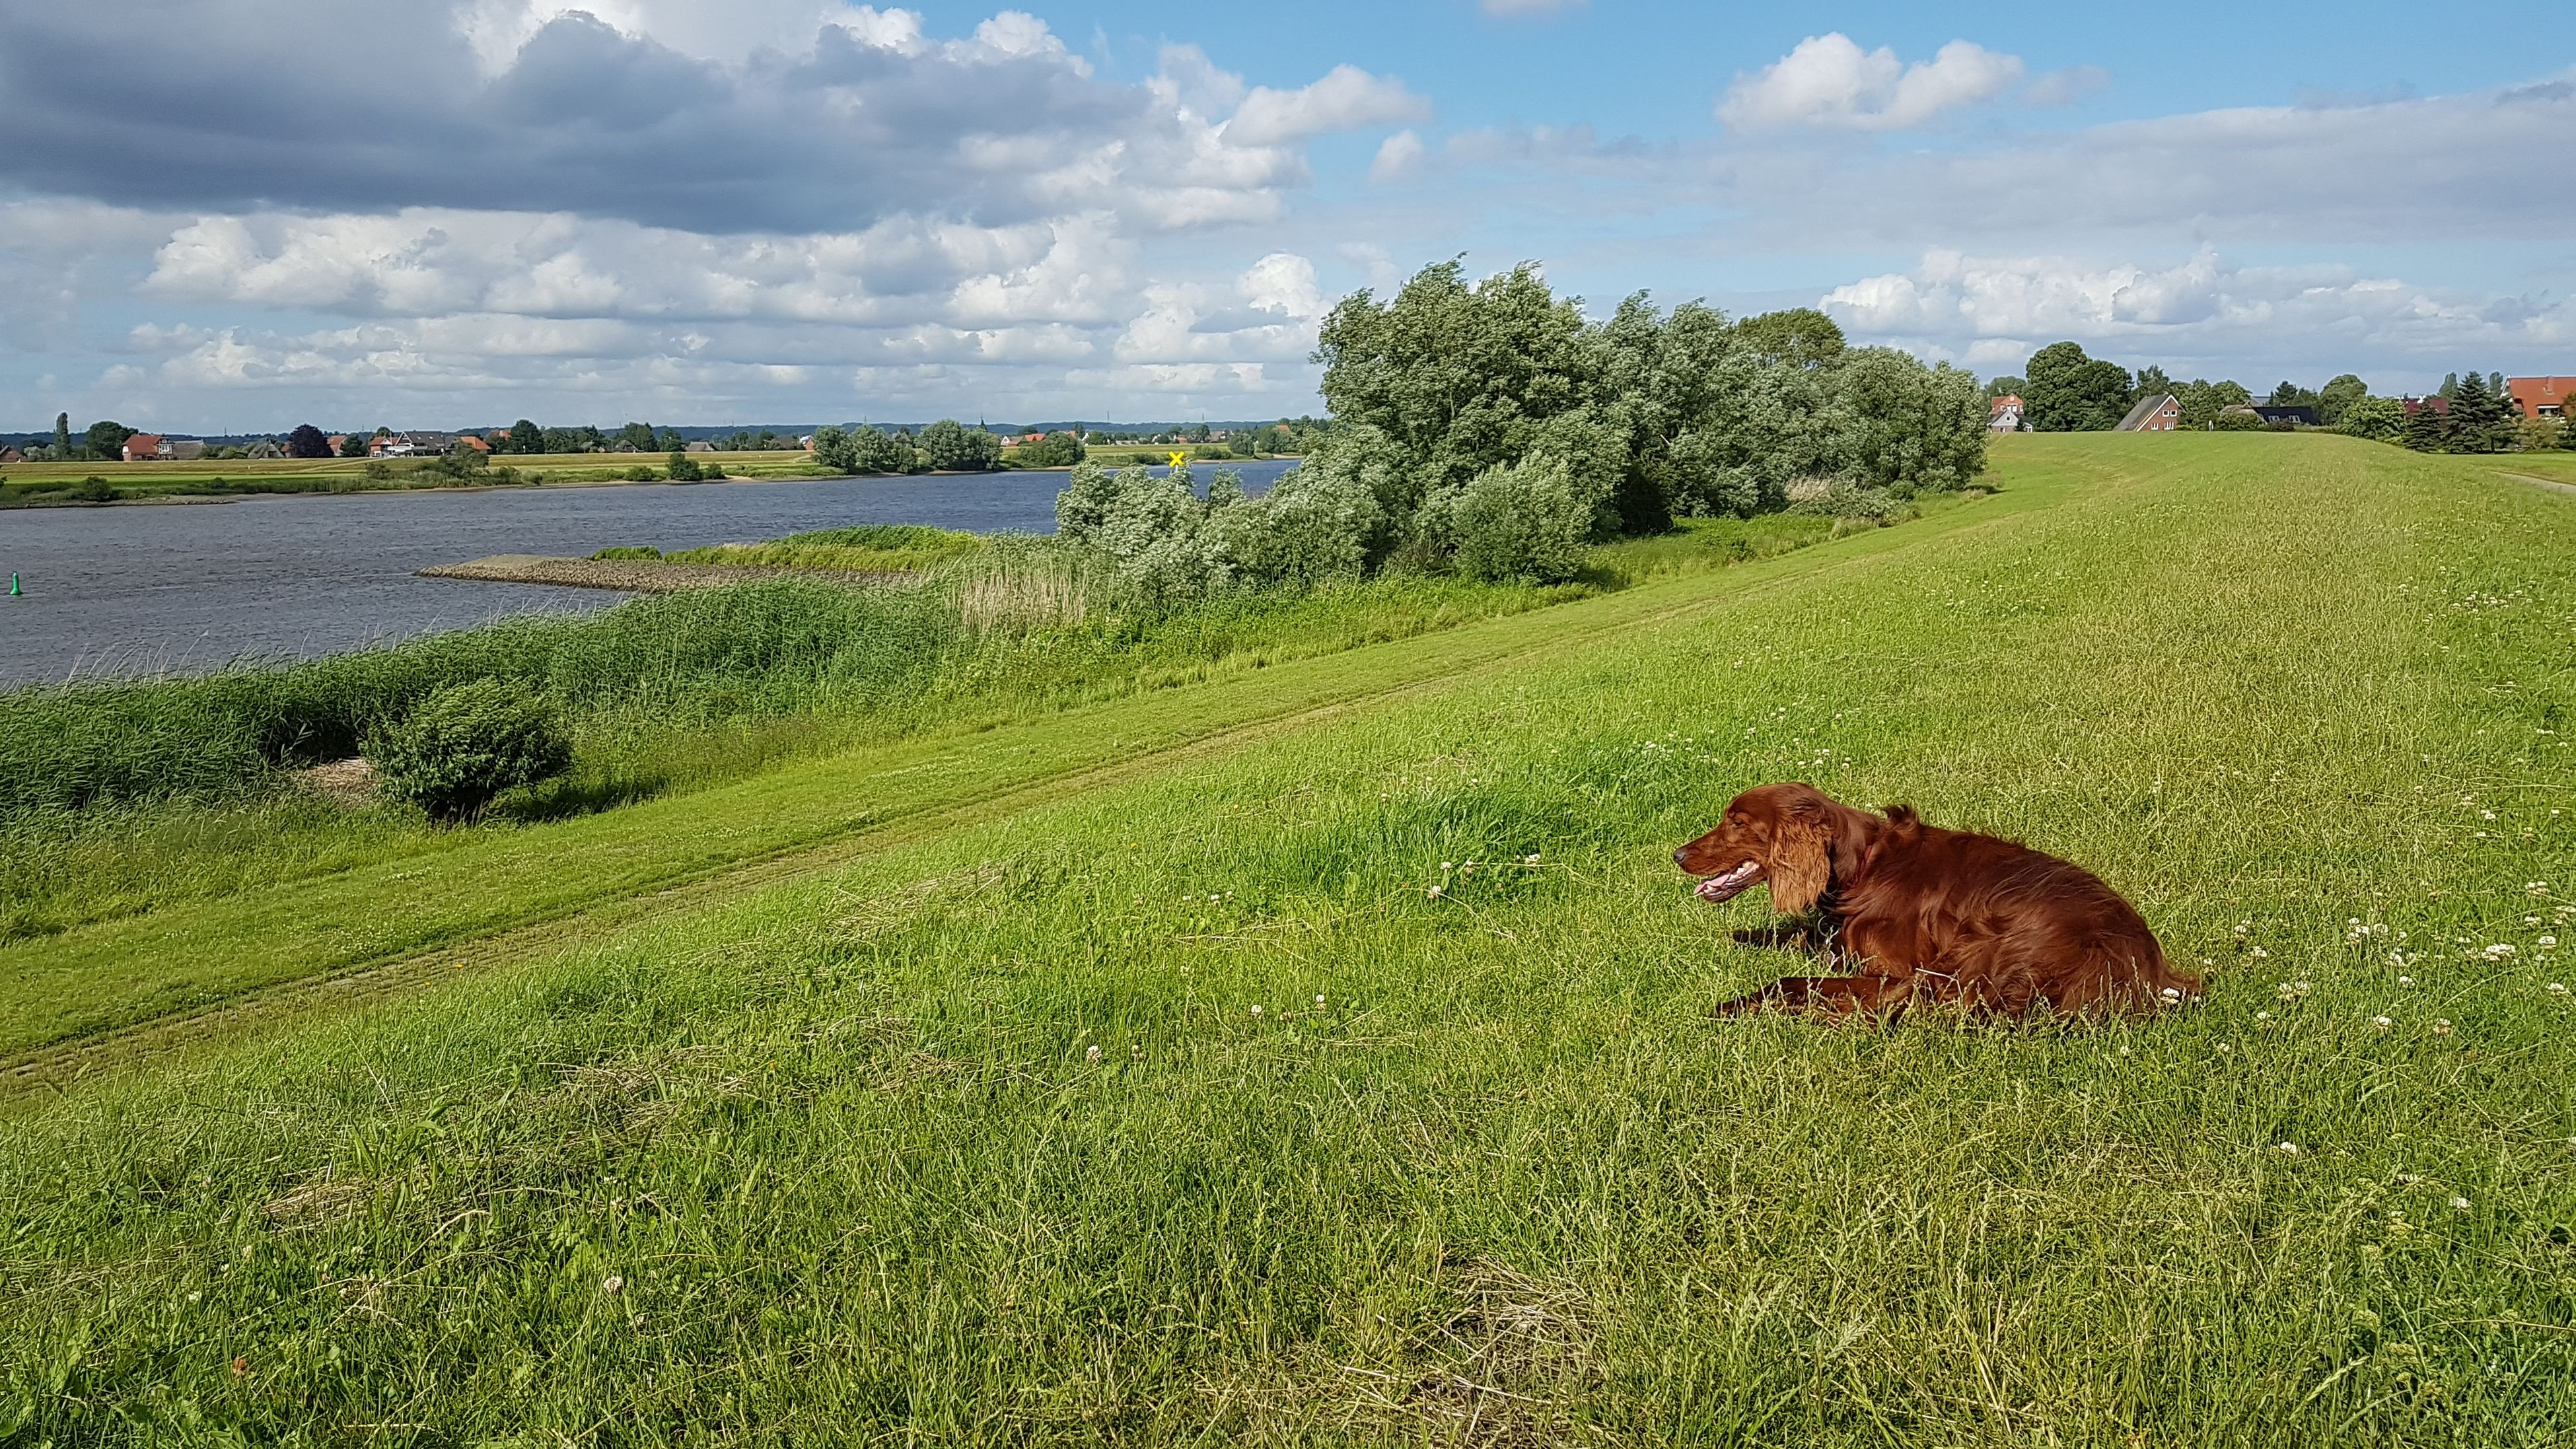 grass, sky, animal themes, mammal, cloud - sky, landscape, green color, field, nature, day, one animal, no people, tree, tranquil scene, outdoors, scenics, animals in the wild, relaxation, beauty in nature, domestic animals, highland cattle